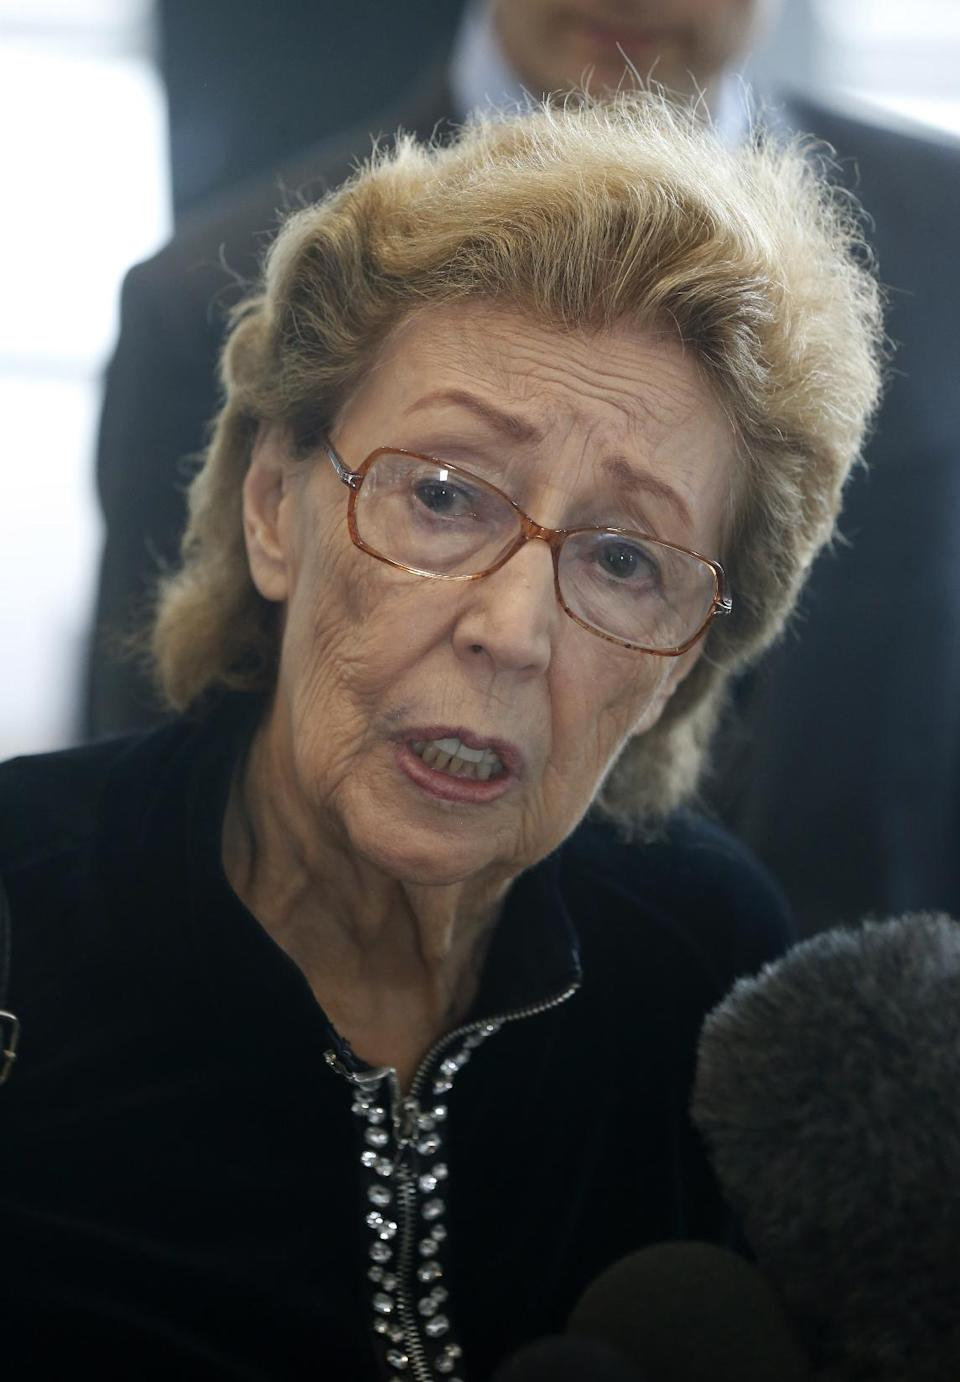 Jacqueline Goldberg responds to a reporters' question after a federal jury returned with a finding in Donald Trump's favor in her civil case alleging that the real estate mogul cheated her in a skyscraper condo deal, Thursday, May 23, 2013 in Chicago. (AP Photo/Charles Rex Arbogast)